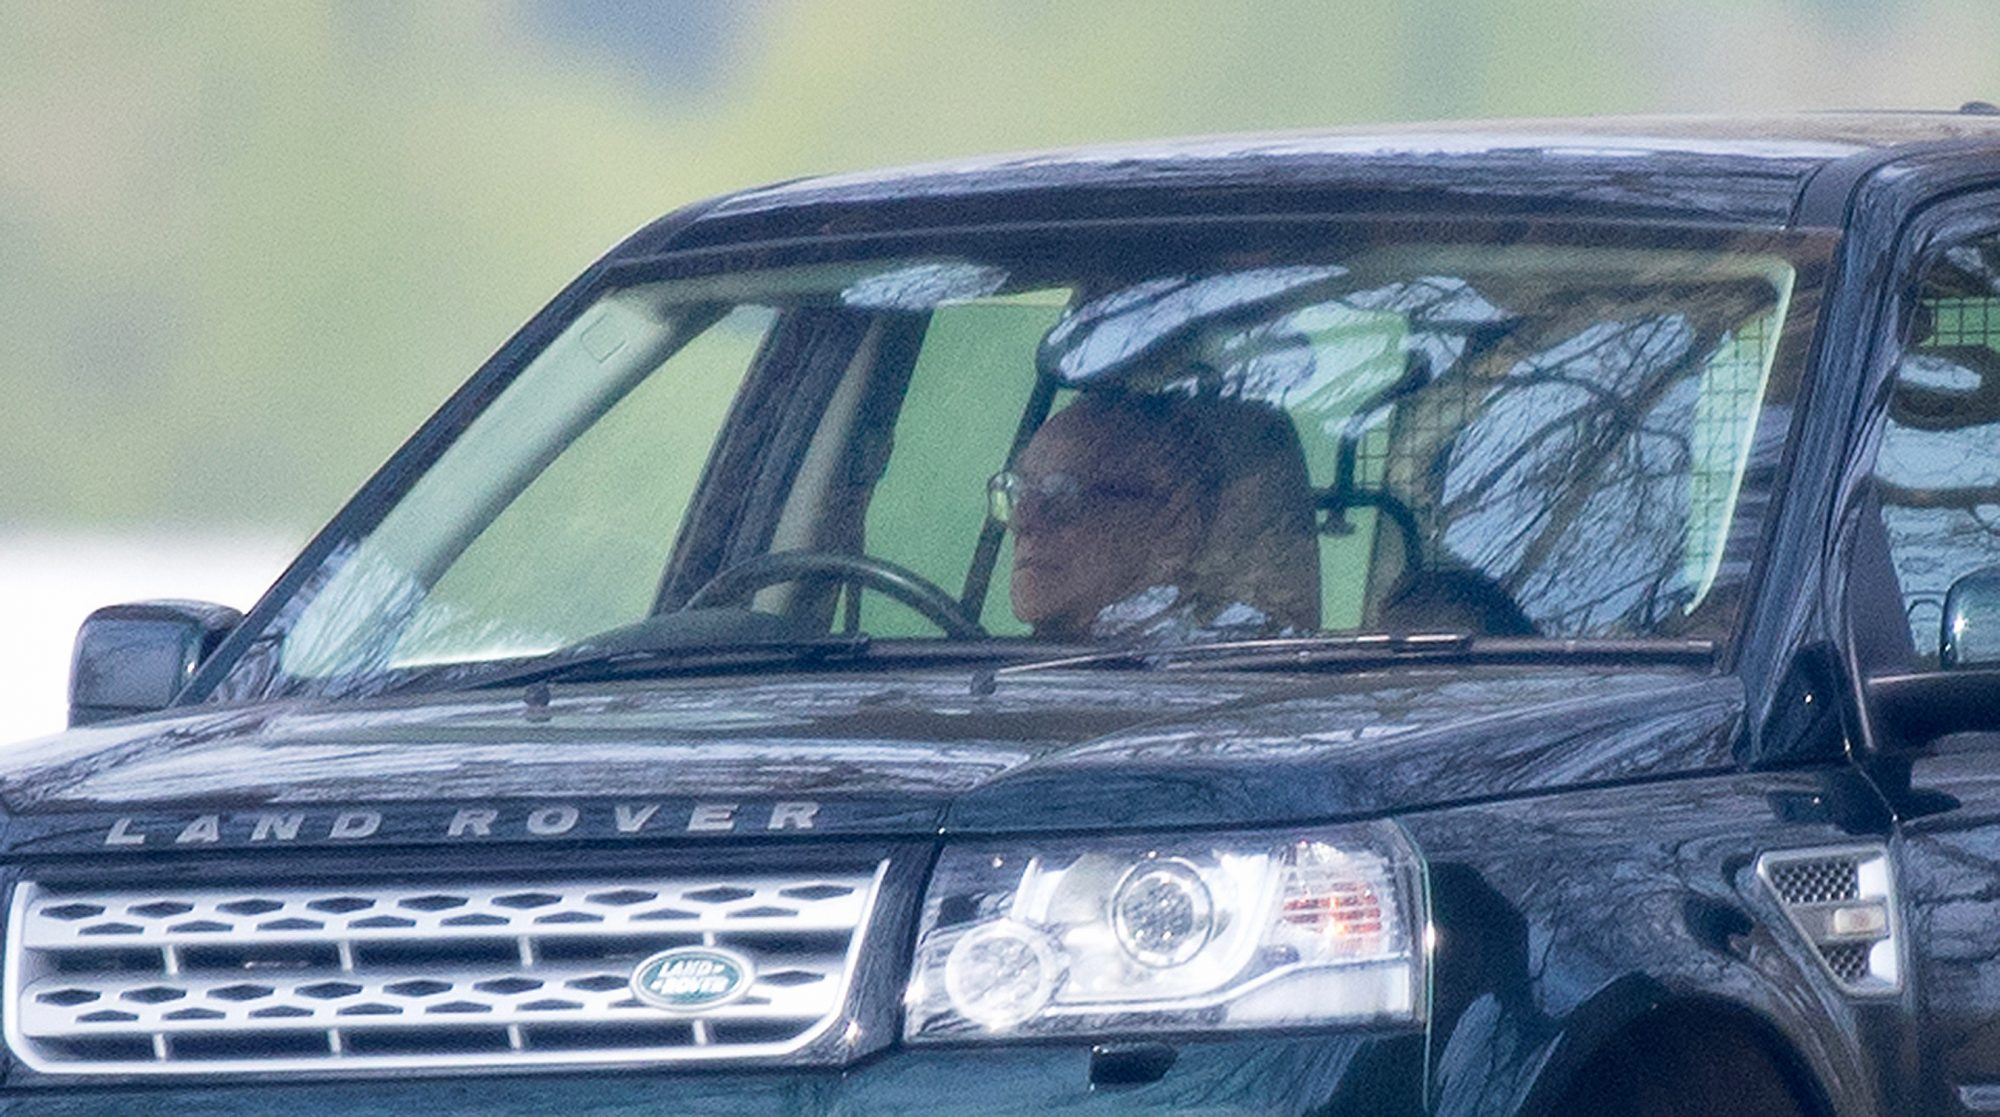 EXCLUSIVE:  While The Queen is Working Prince Philip Relaxes in His Land Rover